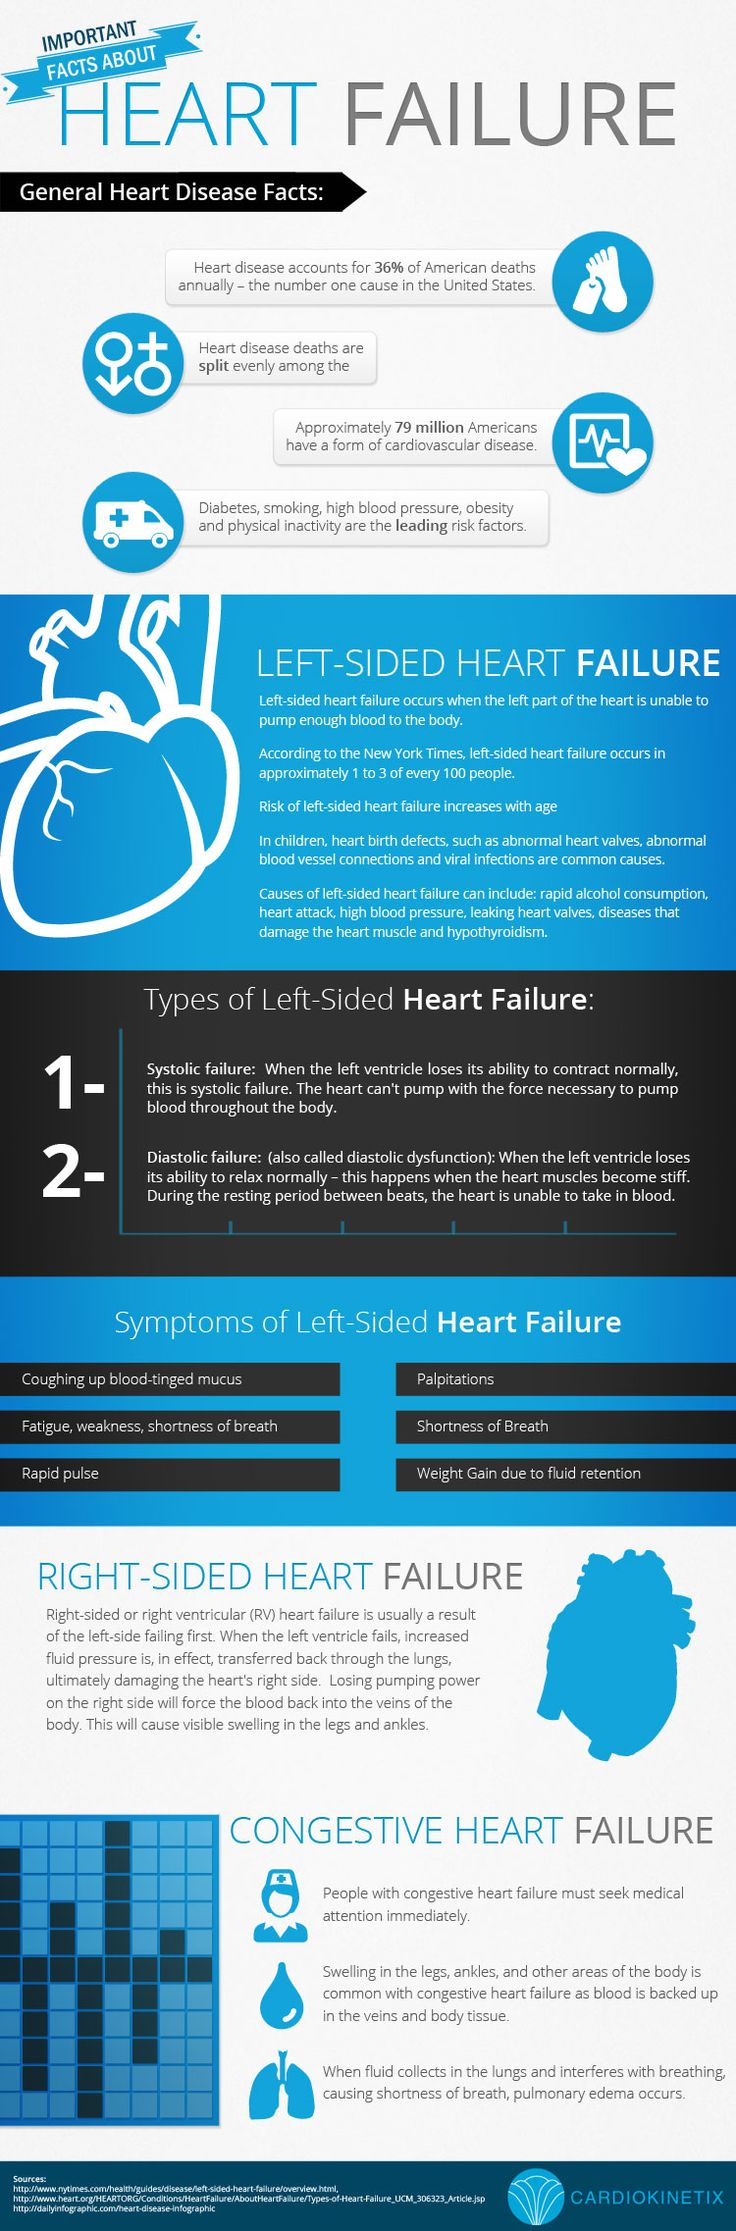 In the United States, more than six million people are living with #heartfailure (HF), and more than 600,000 new HF patients are diagnosed each year. Learn about the important facts related to the different types of heart failure.